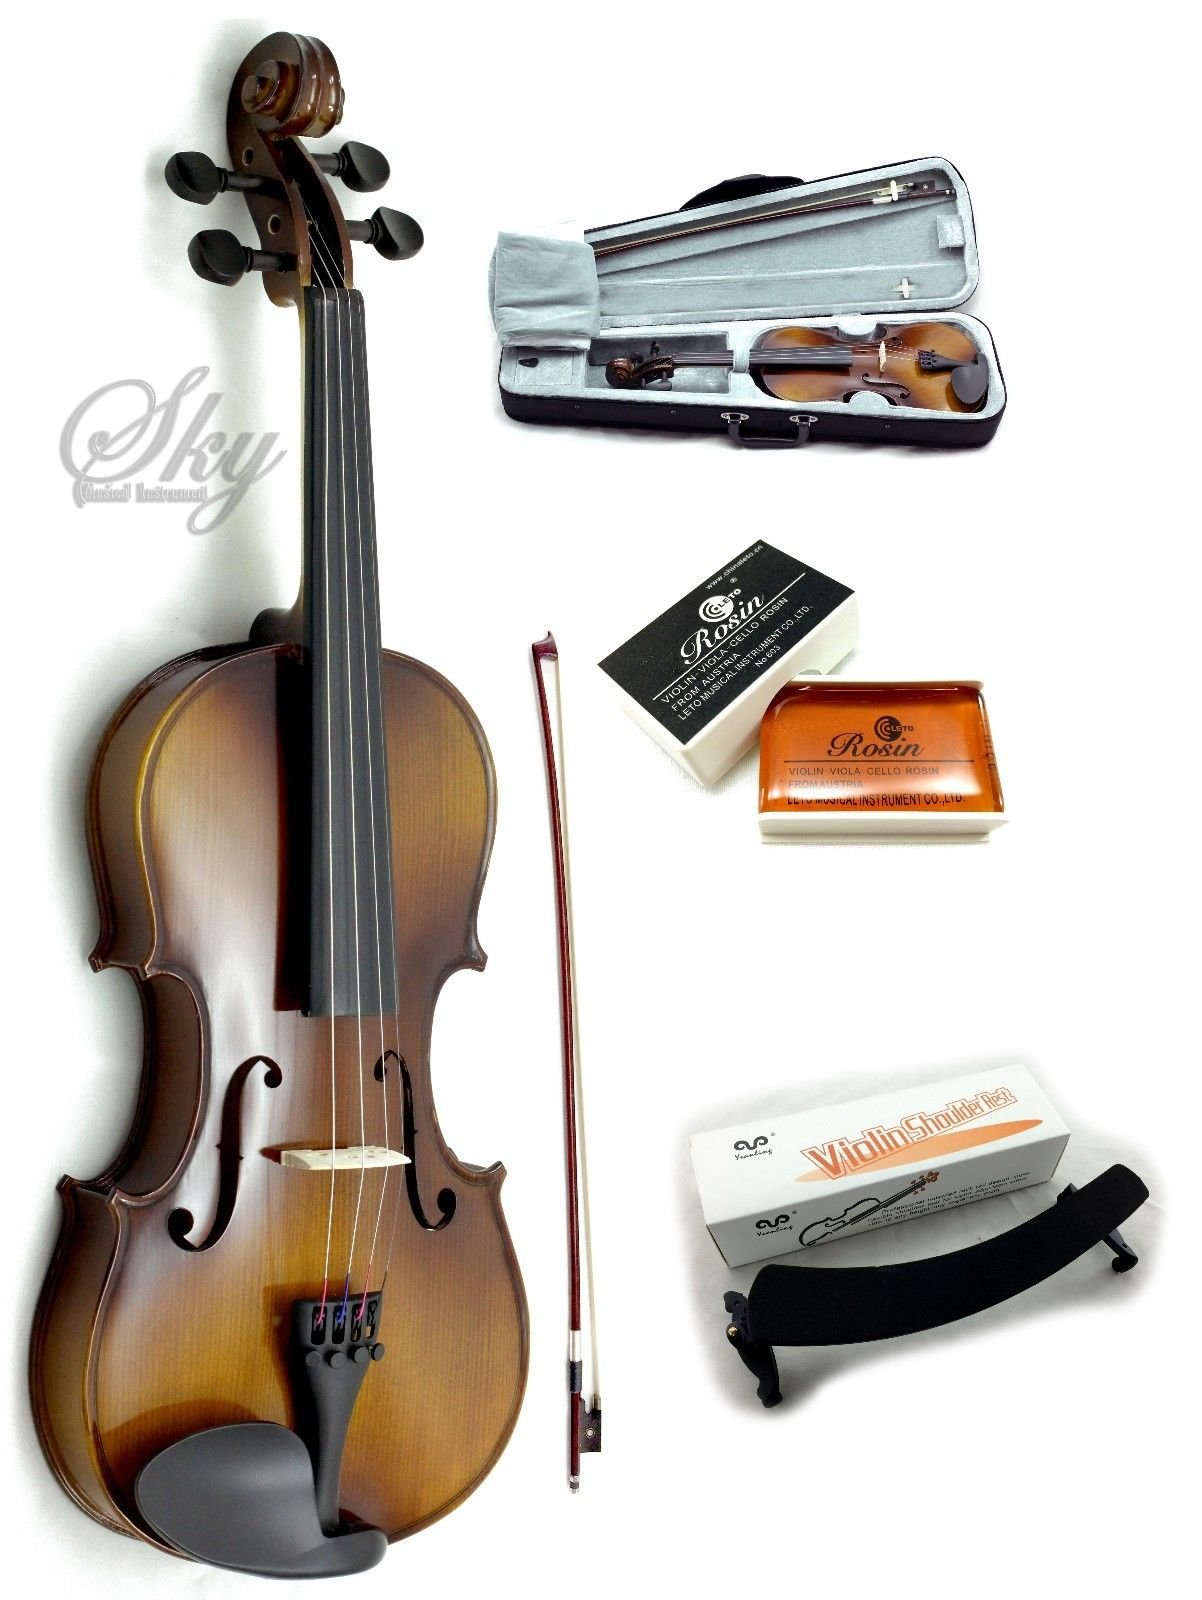 Sky Brand New Solid Wood Antique Viola Outfit with Lightweight Case, Bow and Rosin (16 Inch) by Sky Music